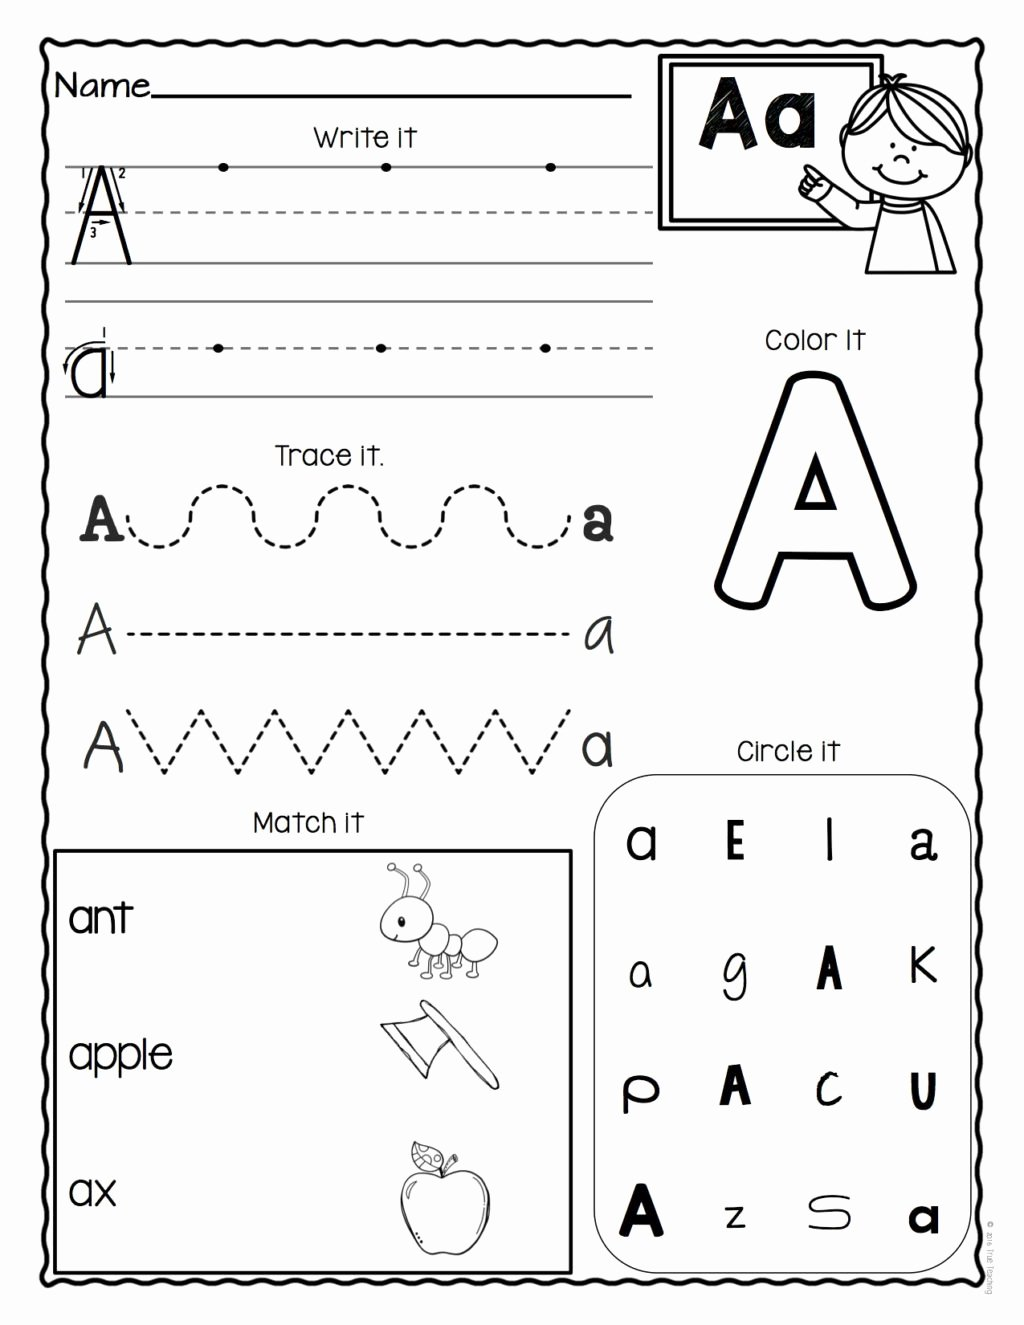 Free Letter A Worksheets for Preschoolers Fresh Worksheet Worksheetool Letter Worksheets Z Set for Free